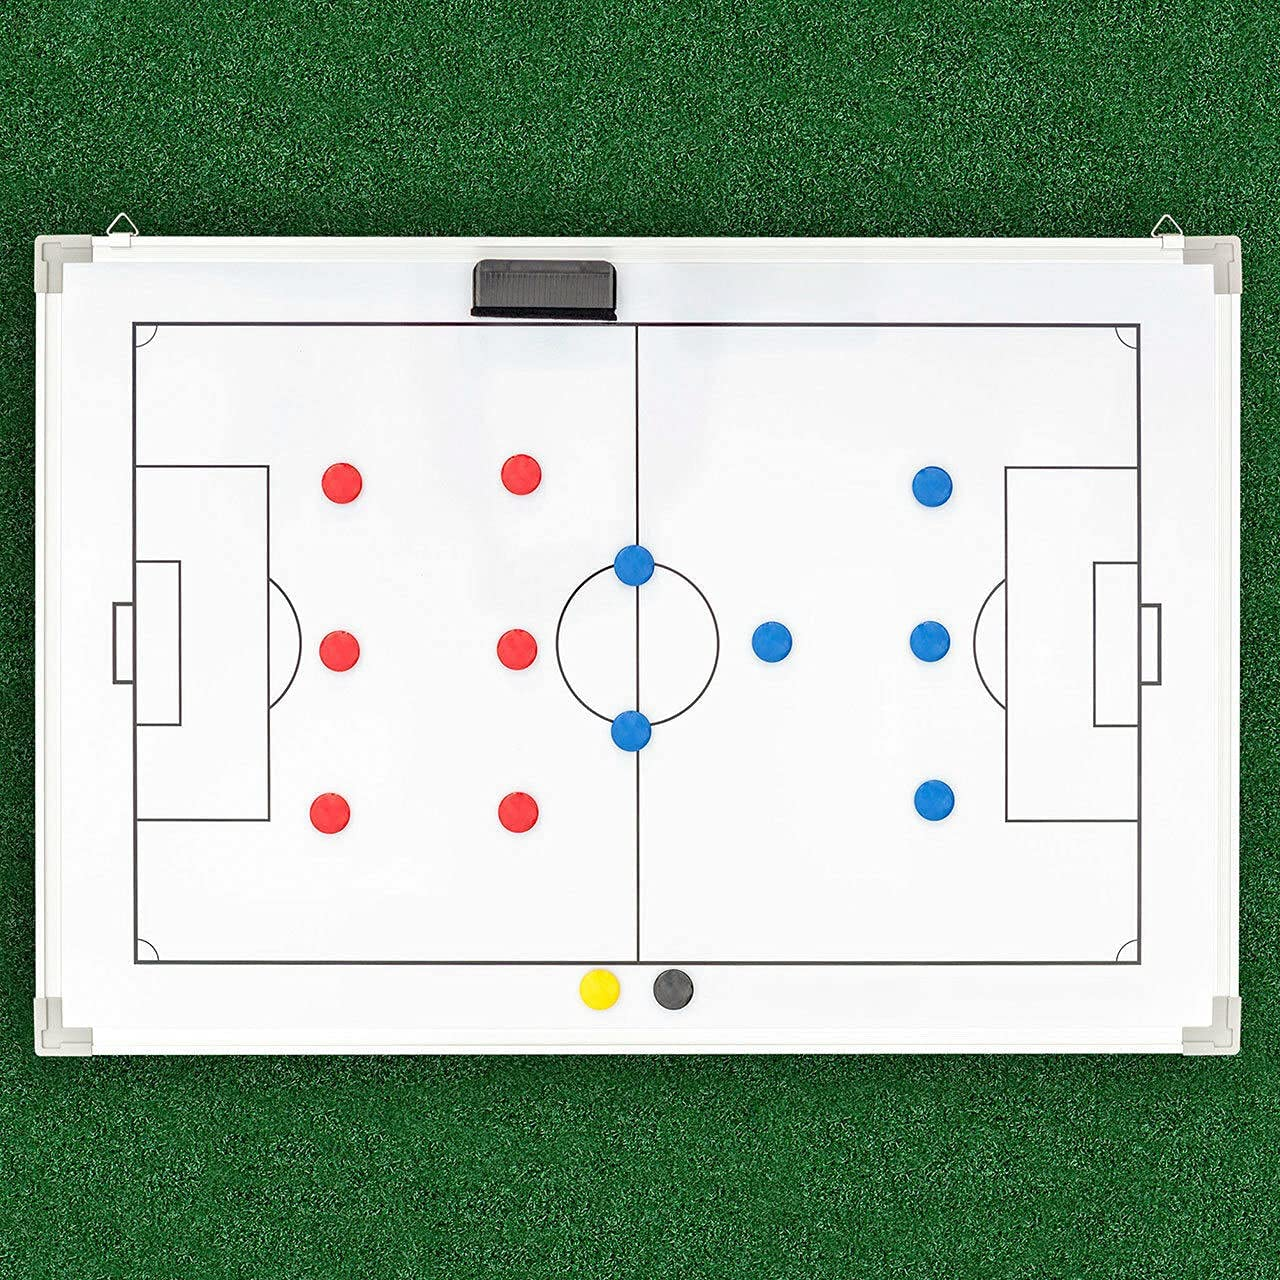 Purchase awagas Soccer Tactics Board Coaching 1 year warranty Double-Sided S